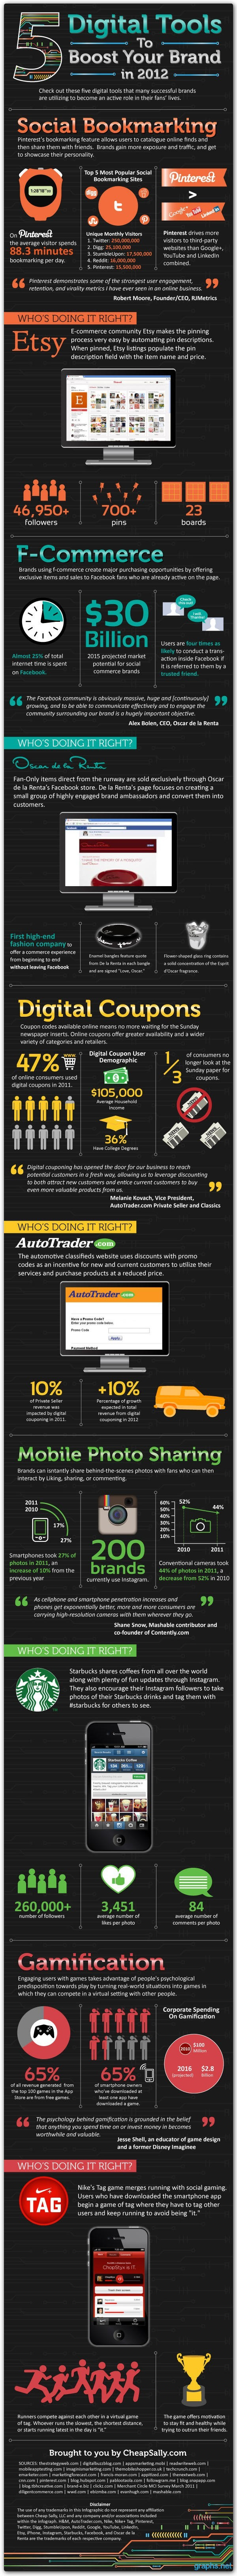 5 digital tools to boost your brand infographic